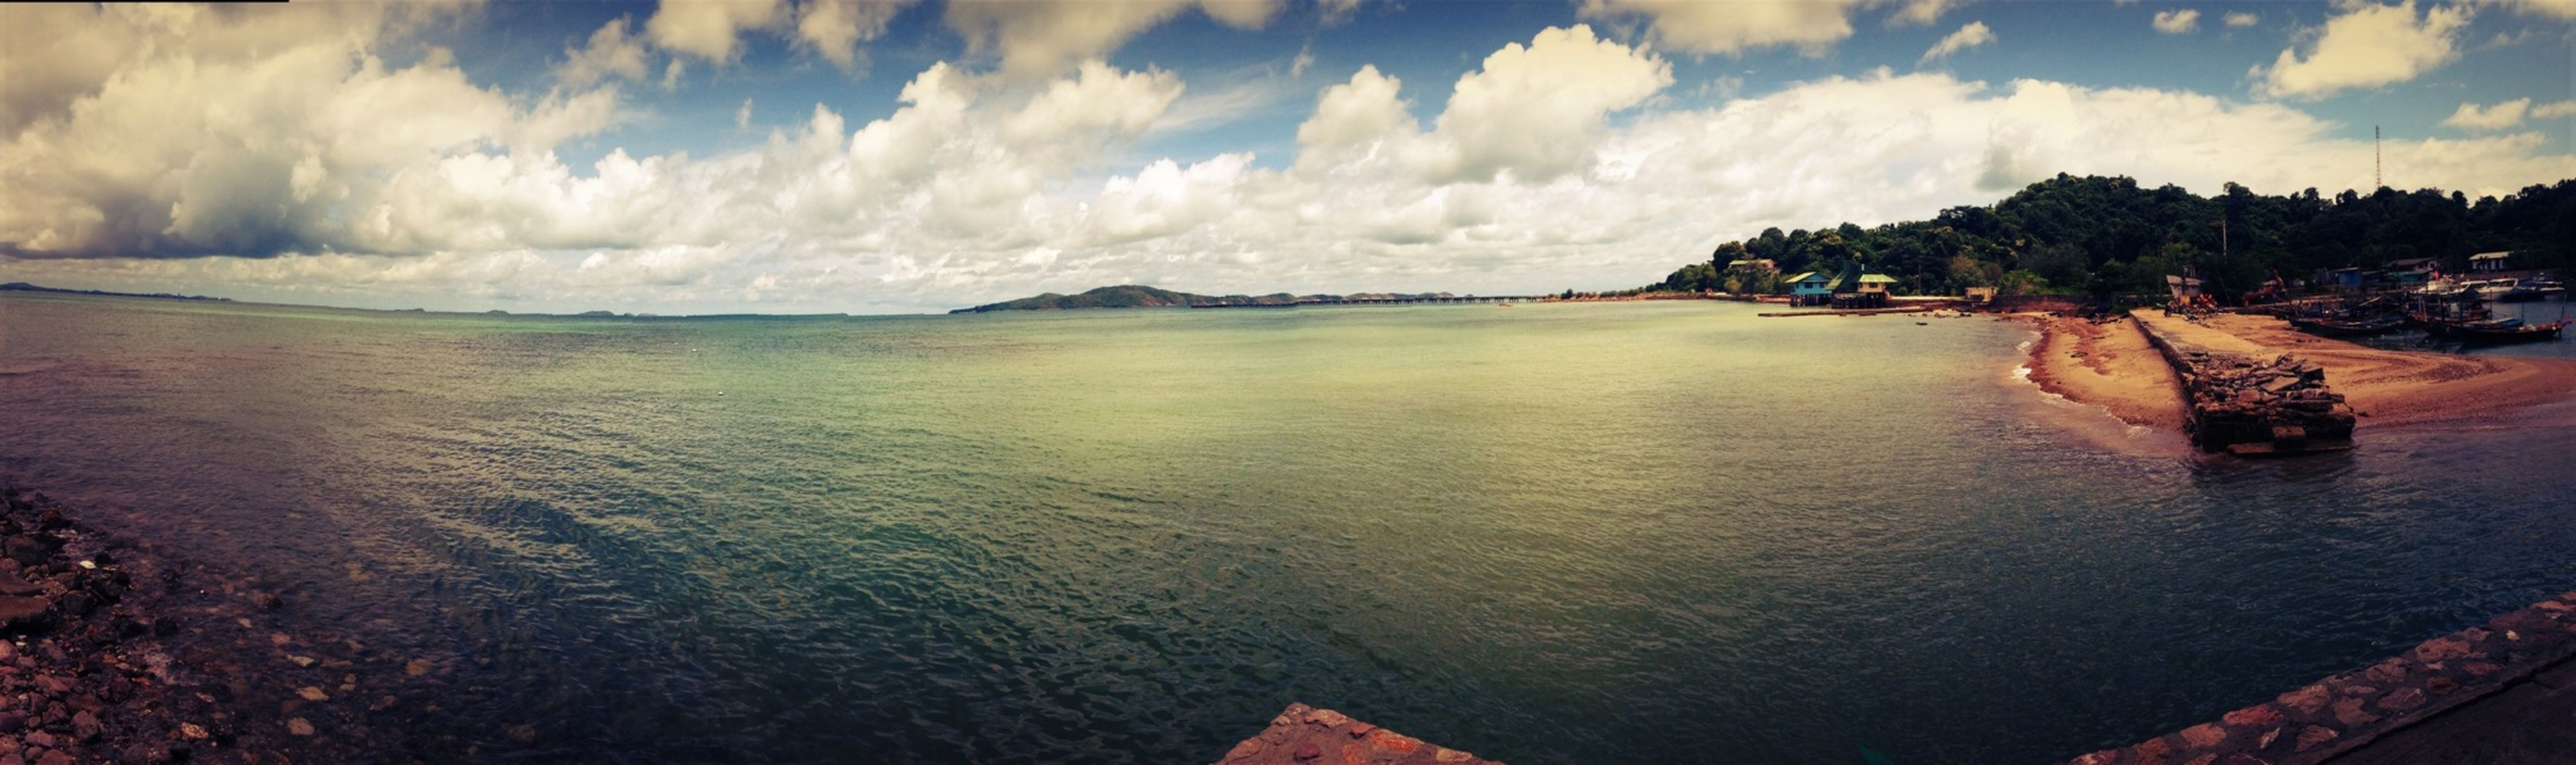 water, sky, sea, tranquil scene, scenics, tranquility, cloud - sky, beauty in nature, nature, cloud, cloudy, idyllic, rippled, panoramic, waterfront, outdoors, coastline, day, no people, non-urban scene